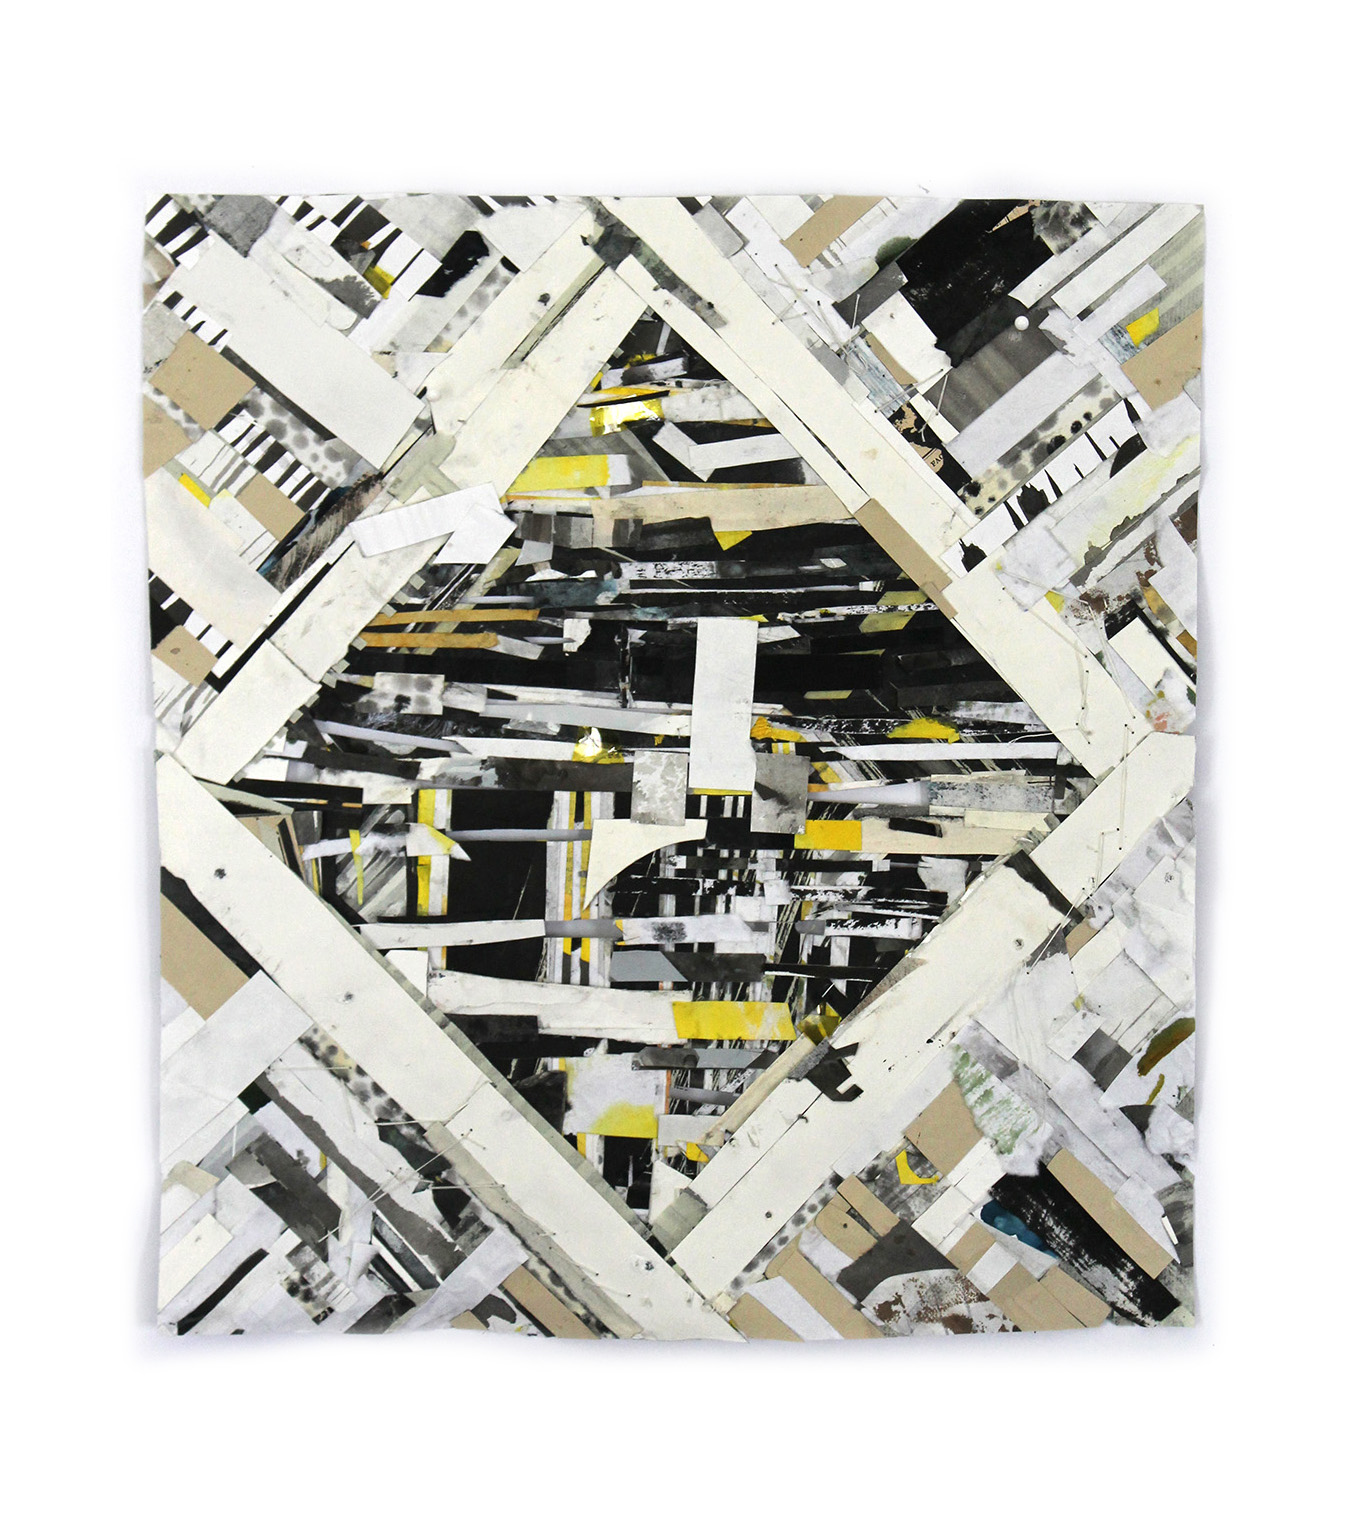 Uplift Rift and Seeing What Sticks , verso, 2013, 15 x 13in.